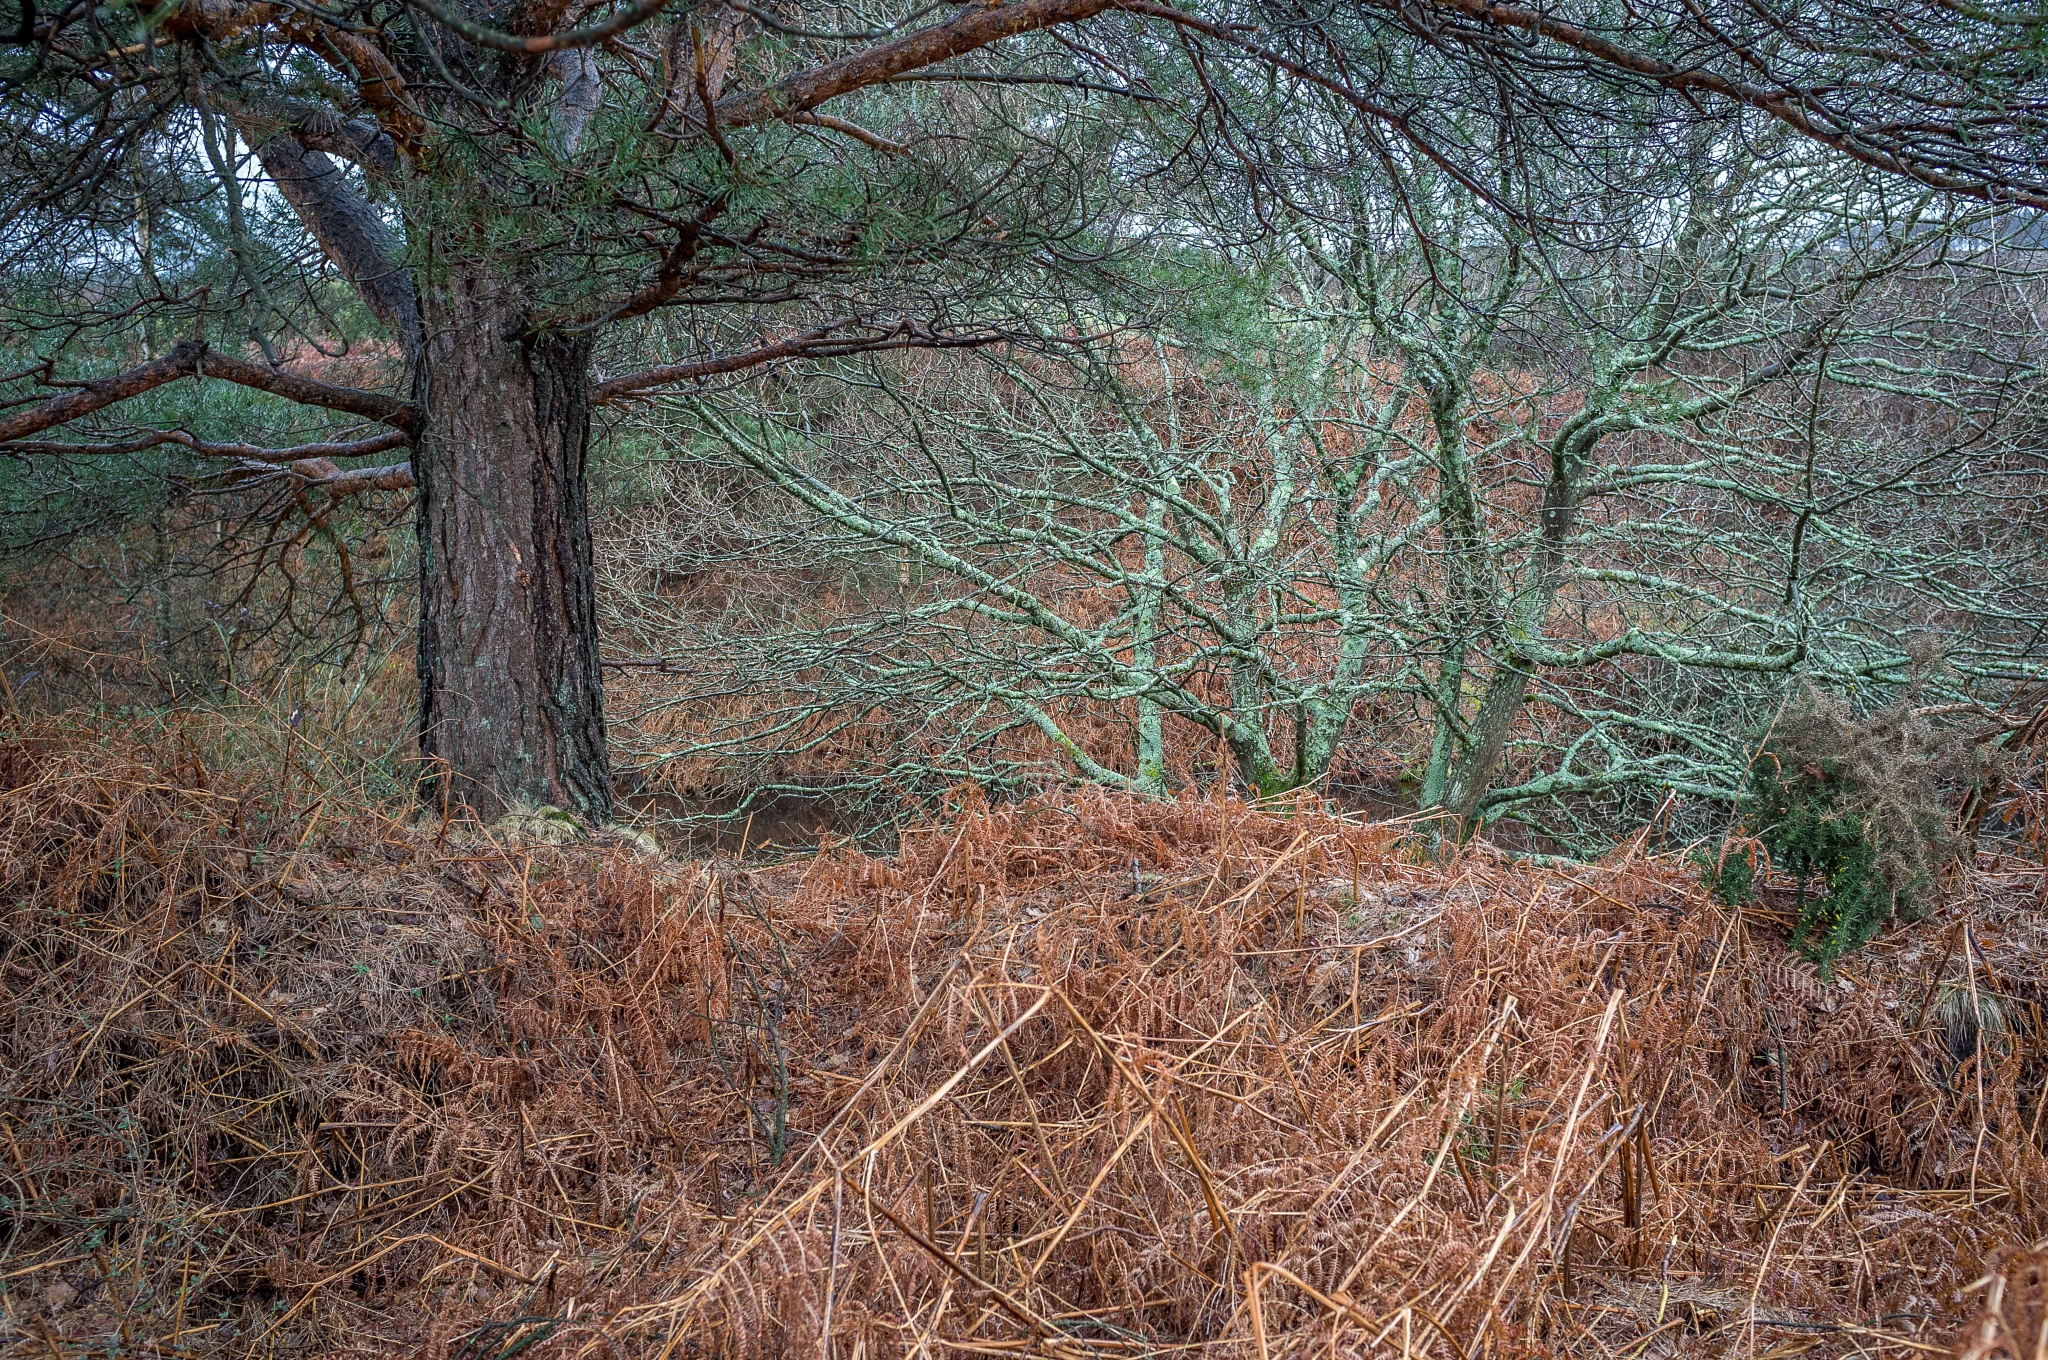 New Forest, Hampshire, UK by NigelMeaby